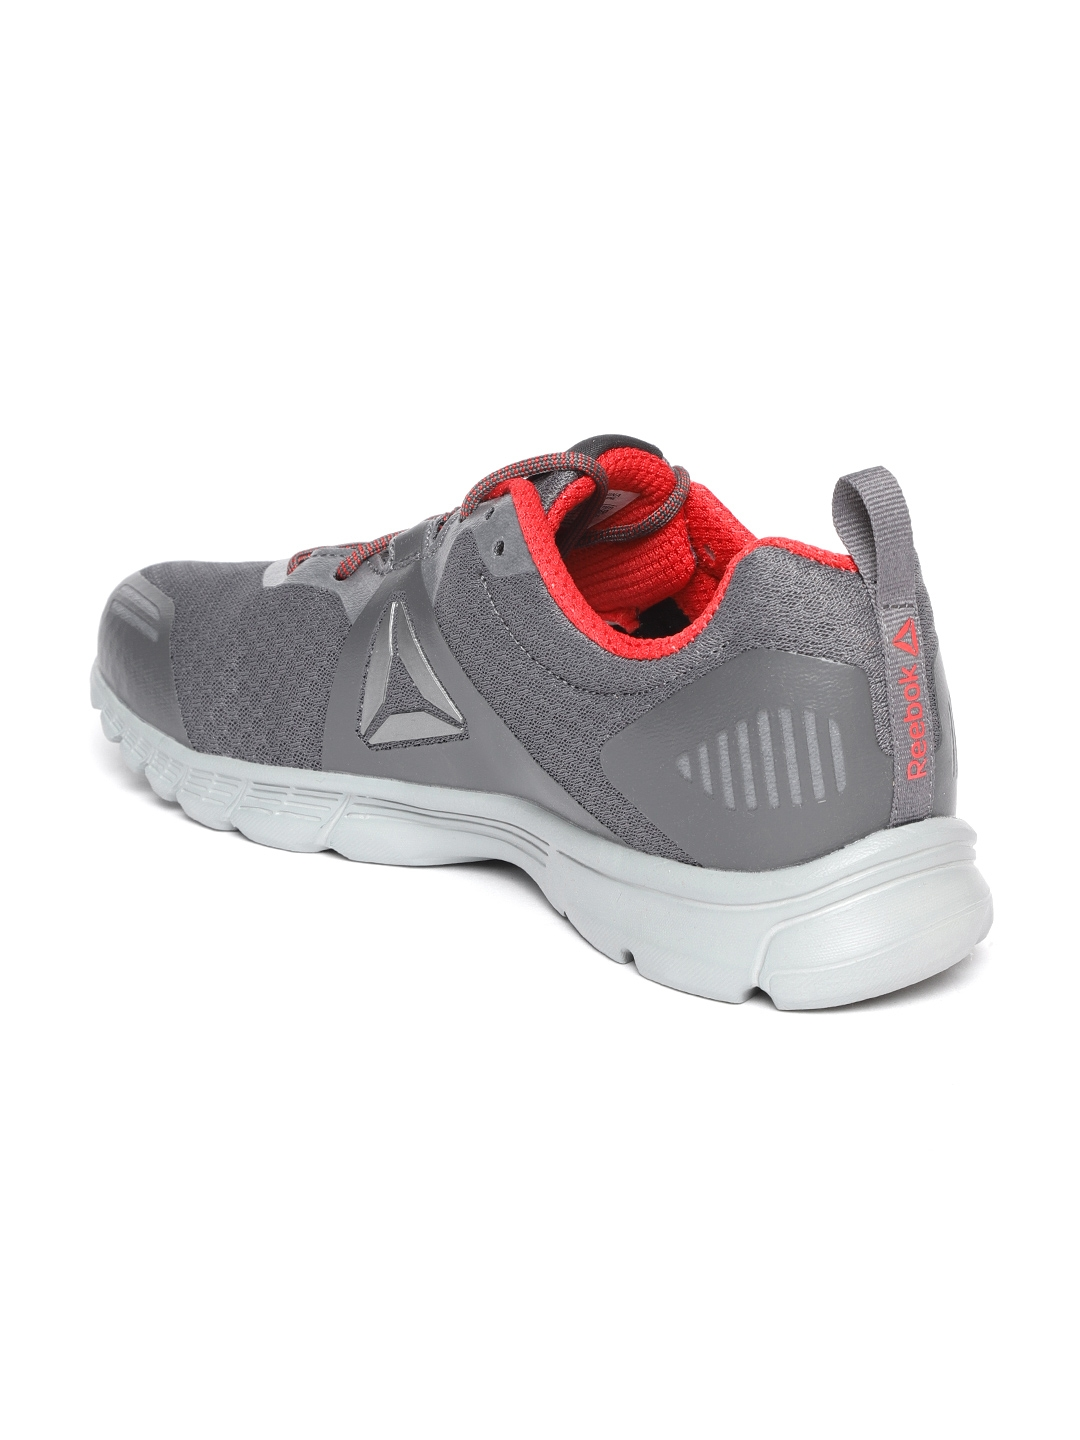 640c94a1ab7a80 Buy Reebok Men Grey Supreme 4.0 Running Shoes - Sports Shoes for Men ...